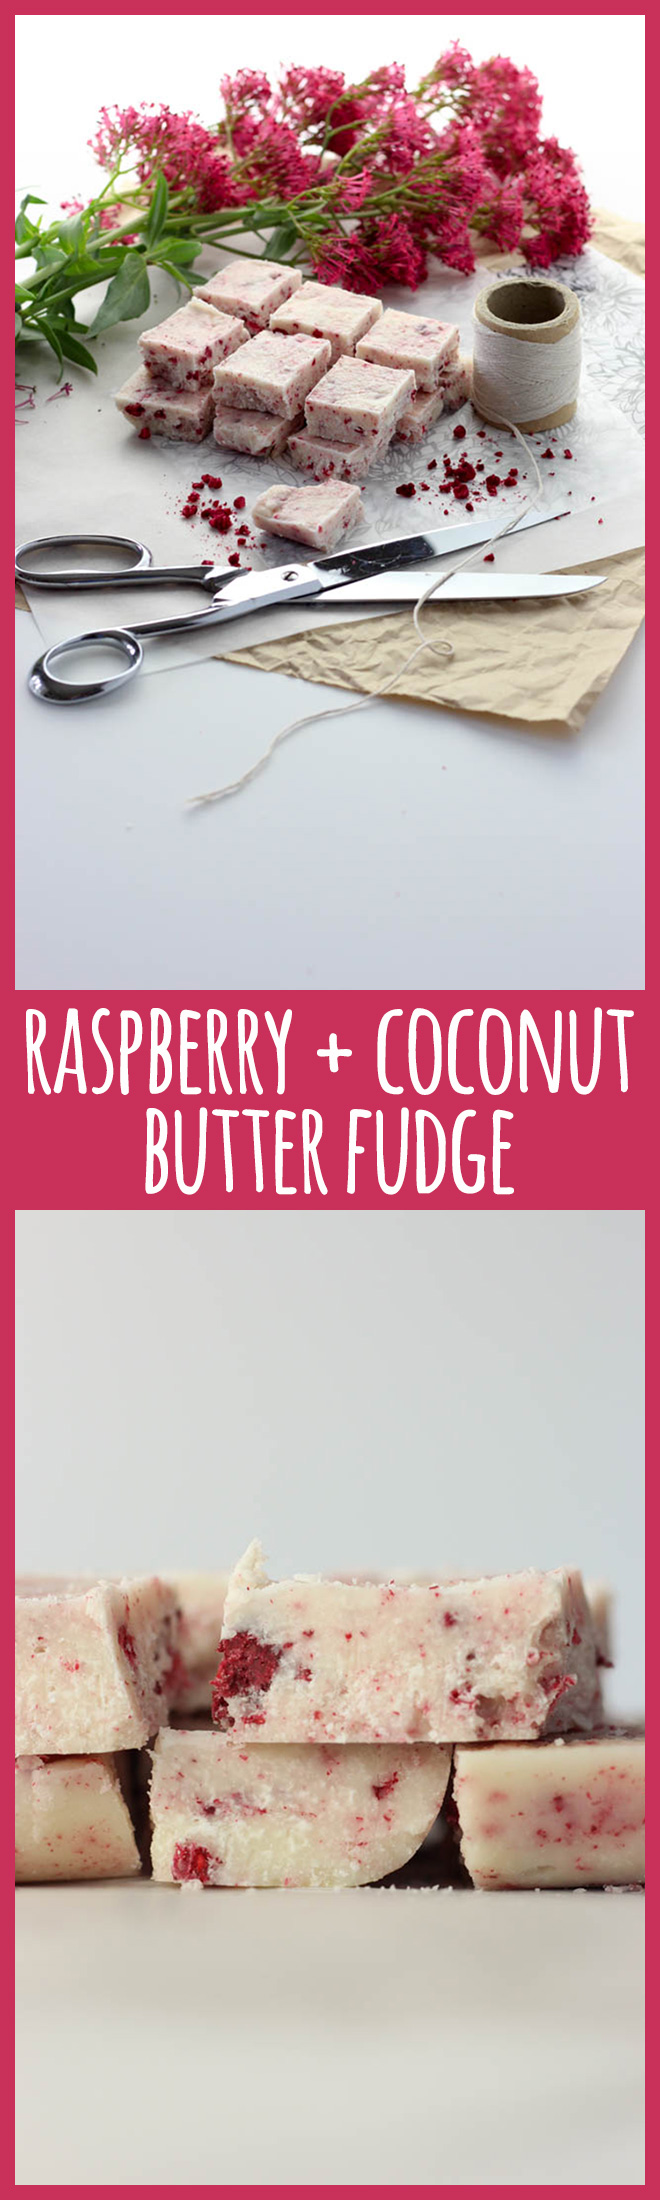 This pretty coconut butter fudge with freeze dried raspberries flecked through it is allergy friendly and a healthier sweet treat or edible gift for people who are trying to limit their sugar intake.